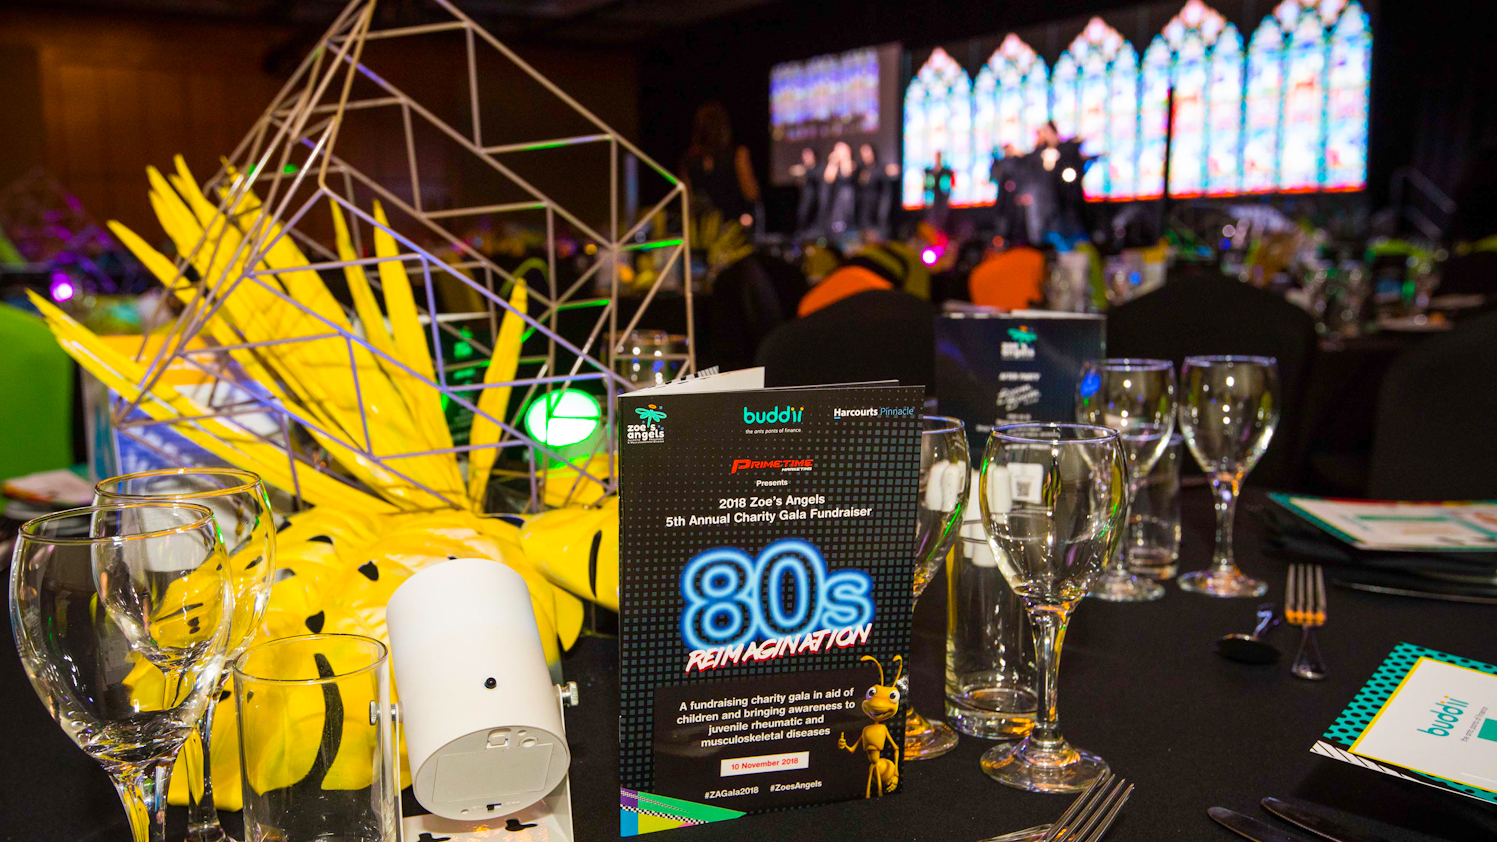 80s Theme Charity Fundraising Gala for Zoe's Angels Charity captured by Brisbane Event Photographer